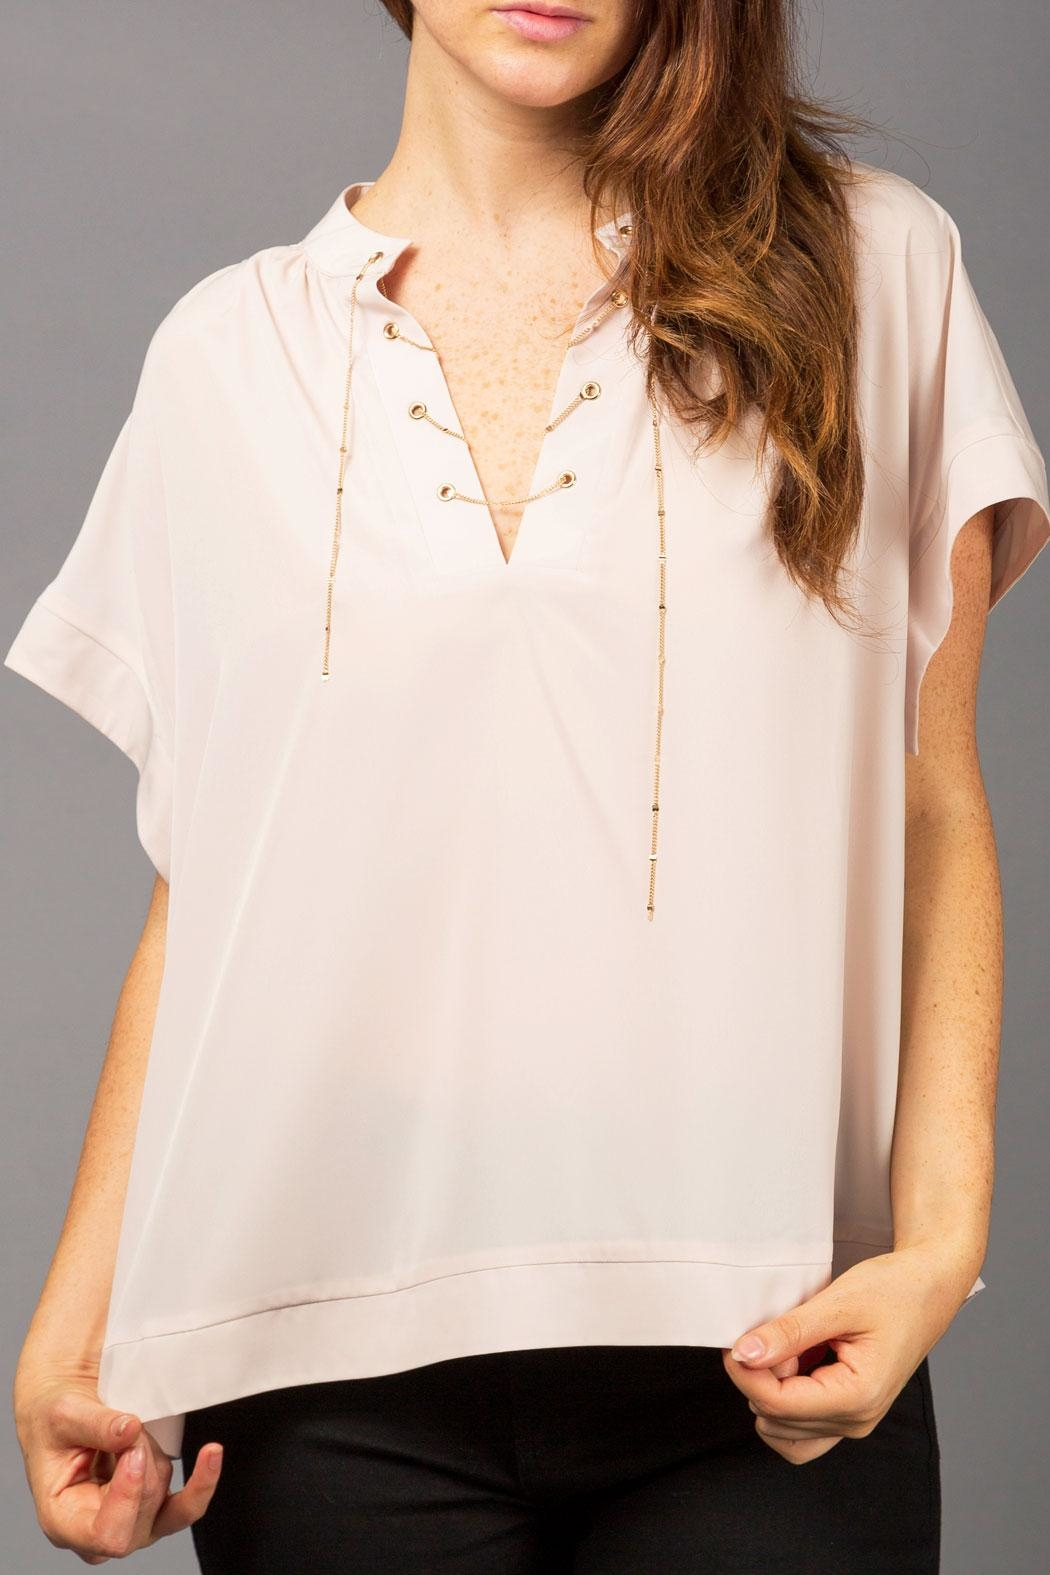 WREN & WILLA Laced-Up Chain Top - Front Cropped Image